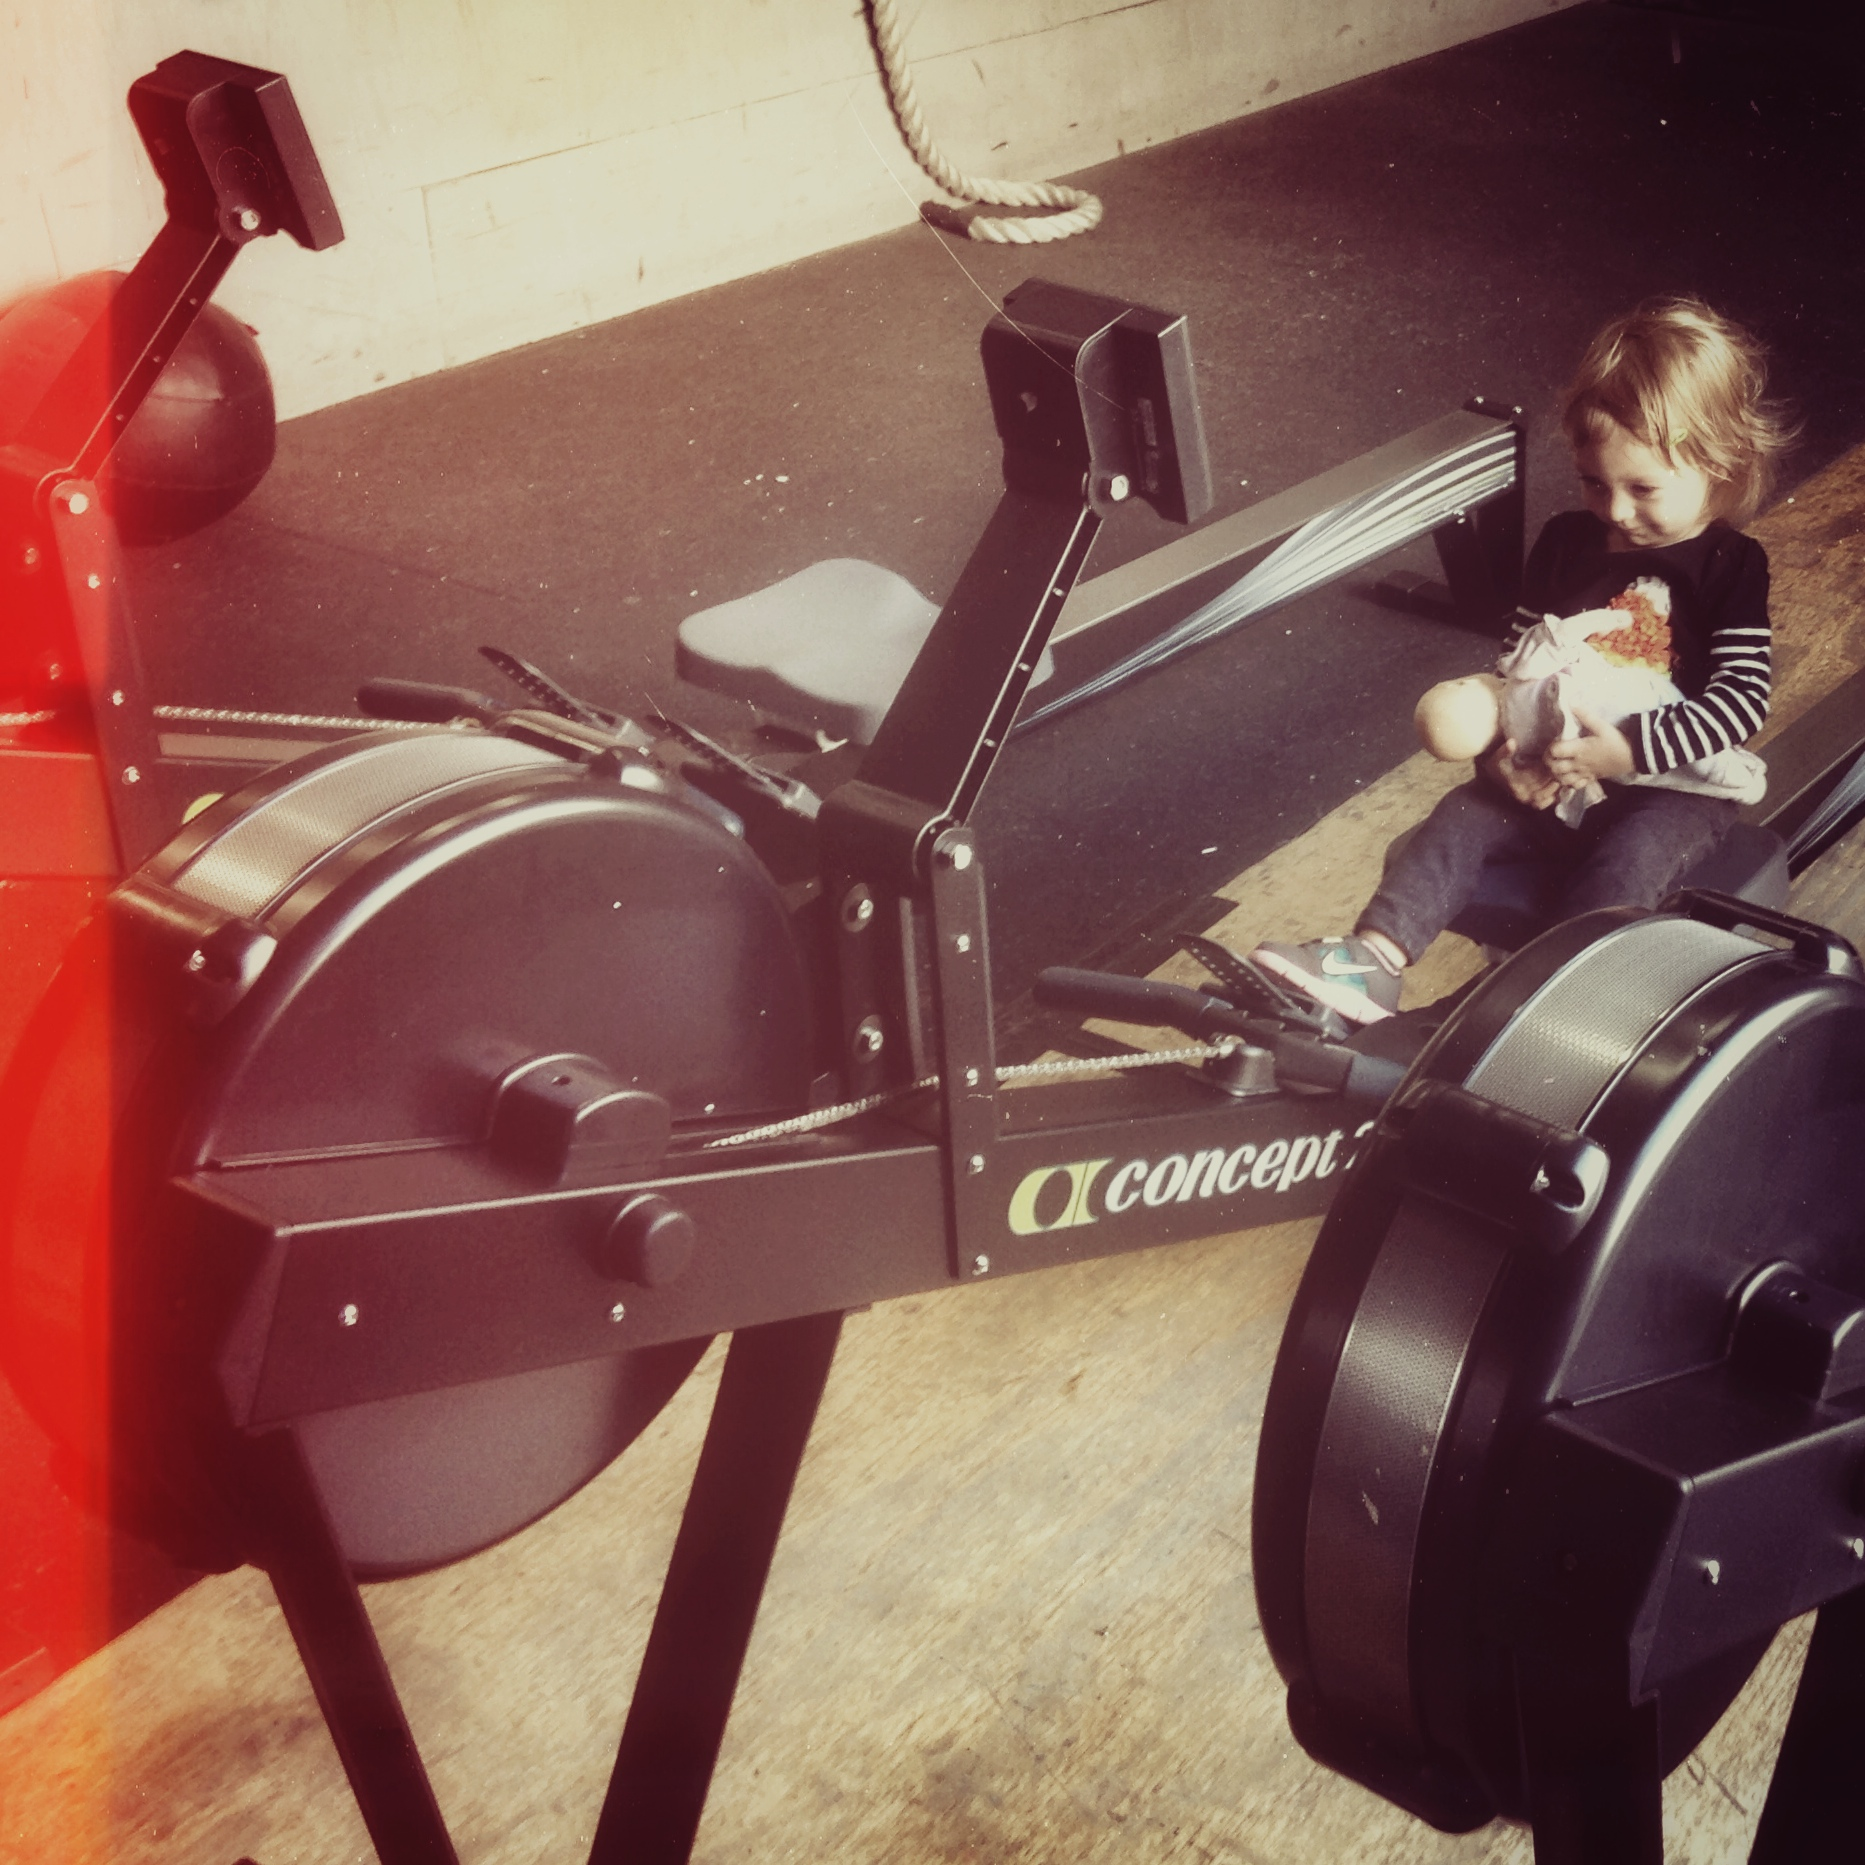 New toys! Just in: 3 brand spankin' new, all-black Concept 2 Rowers!